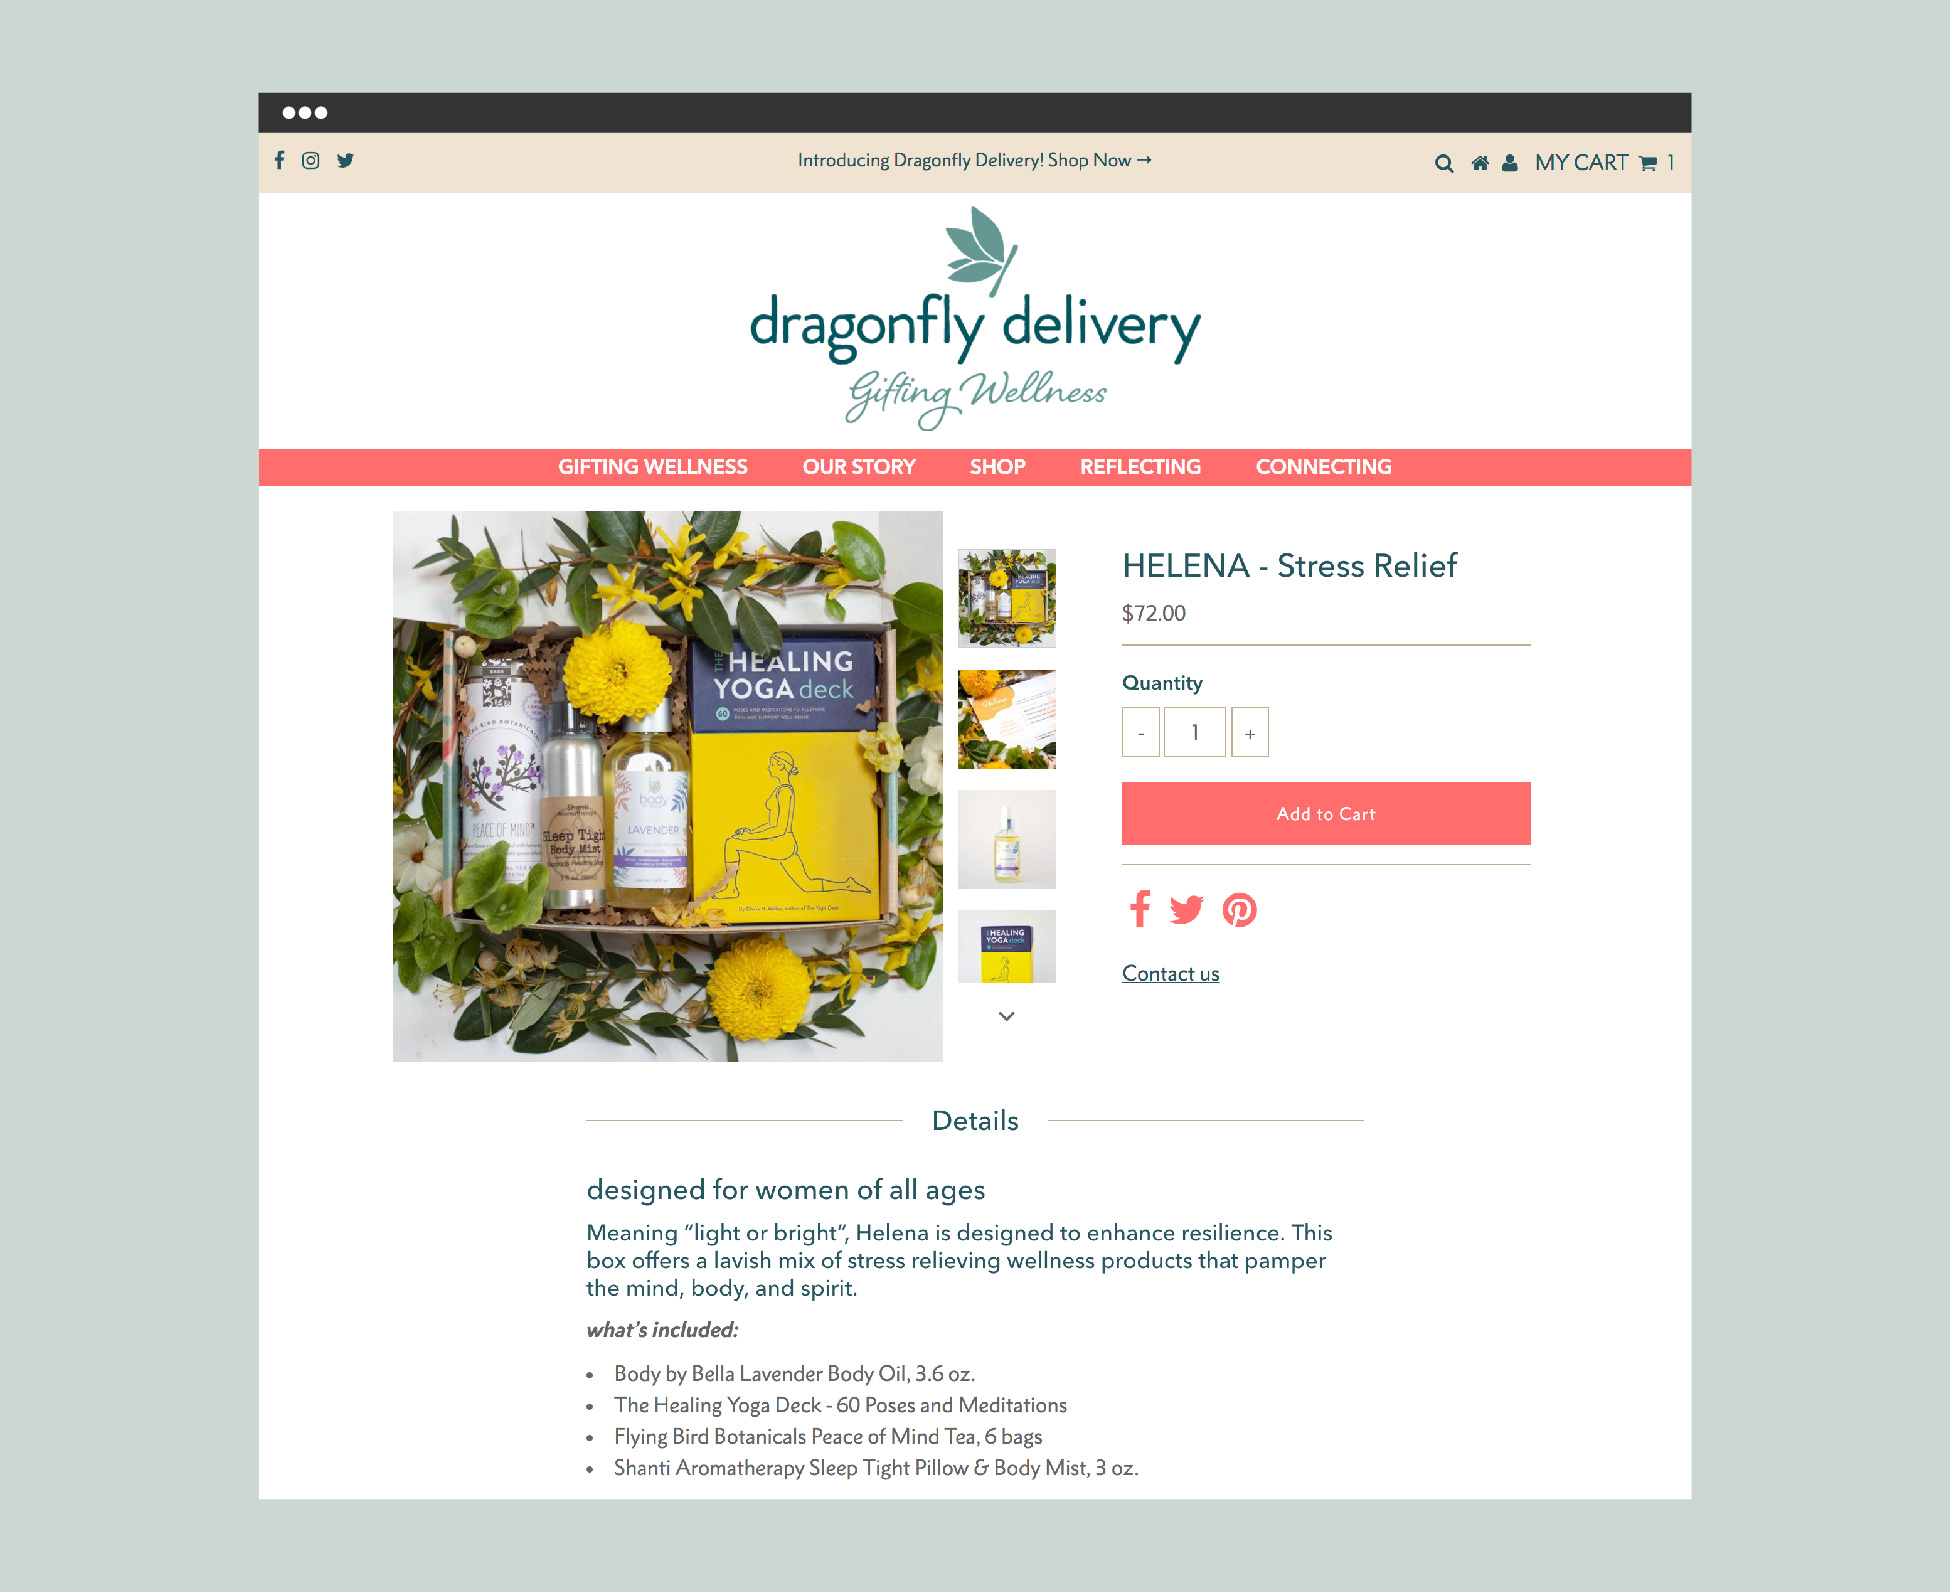 Dragonfly Delivery Shopify Website ( dfdelivery.com ) Product Page Design